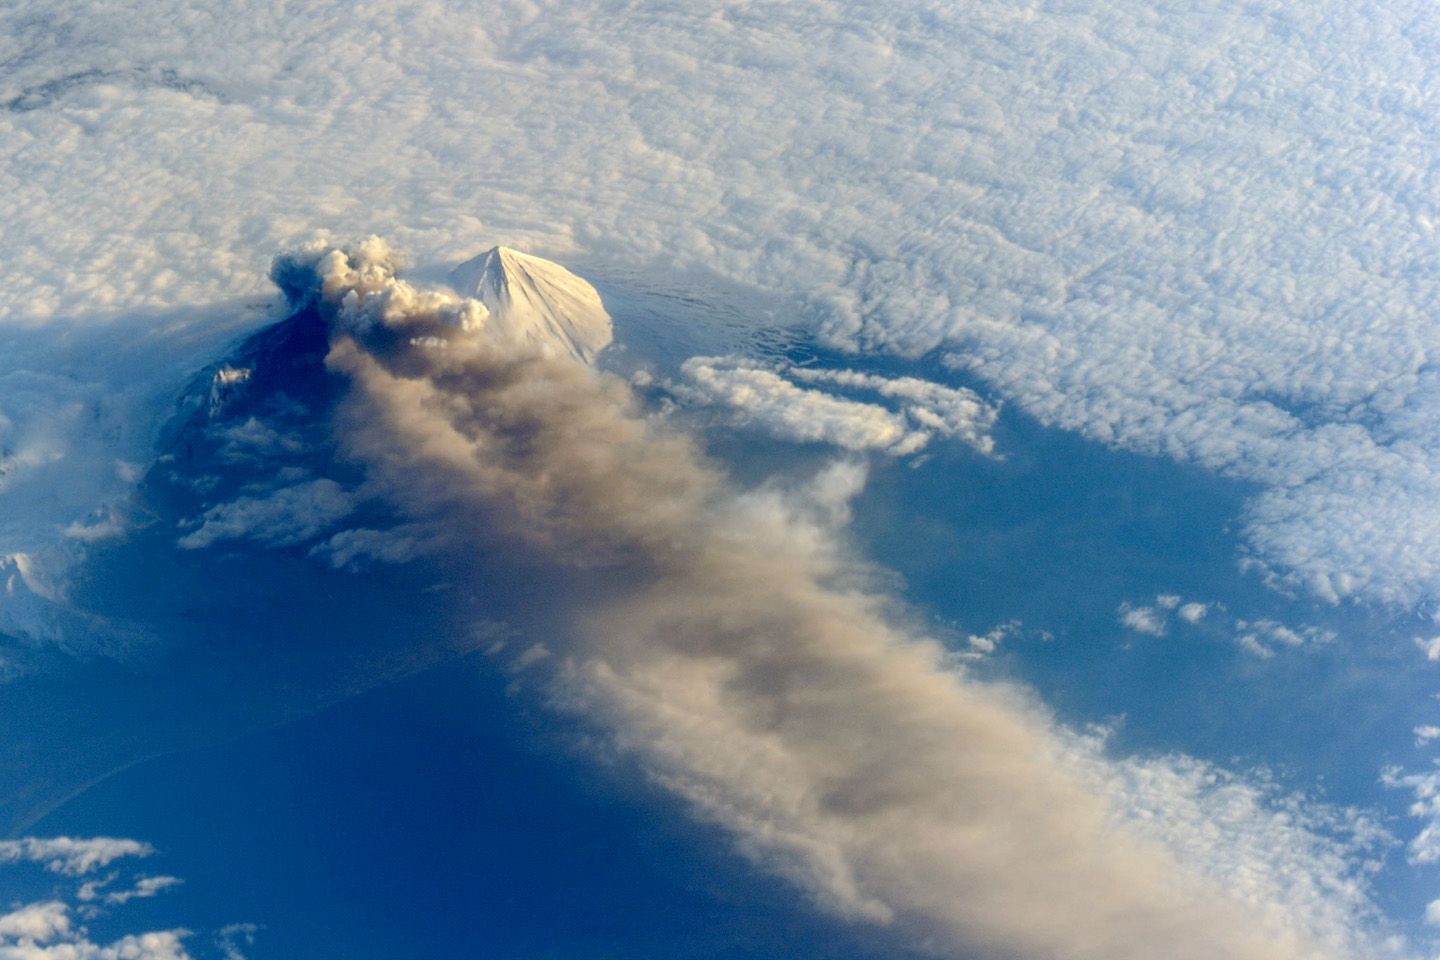 View larger. | Pavlof Volcano in the Aleutian Arc on May 18, 2013. The volcano began erupting May 13, jetted lava into the air and spewed an ash cloud 20,000 feet (6,000 meters) high. Image via NASA.